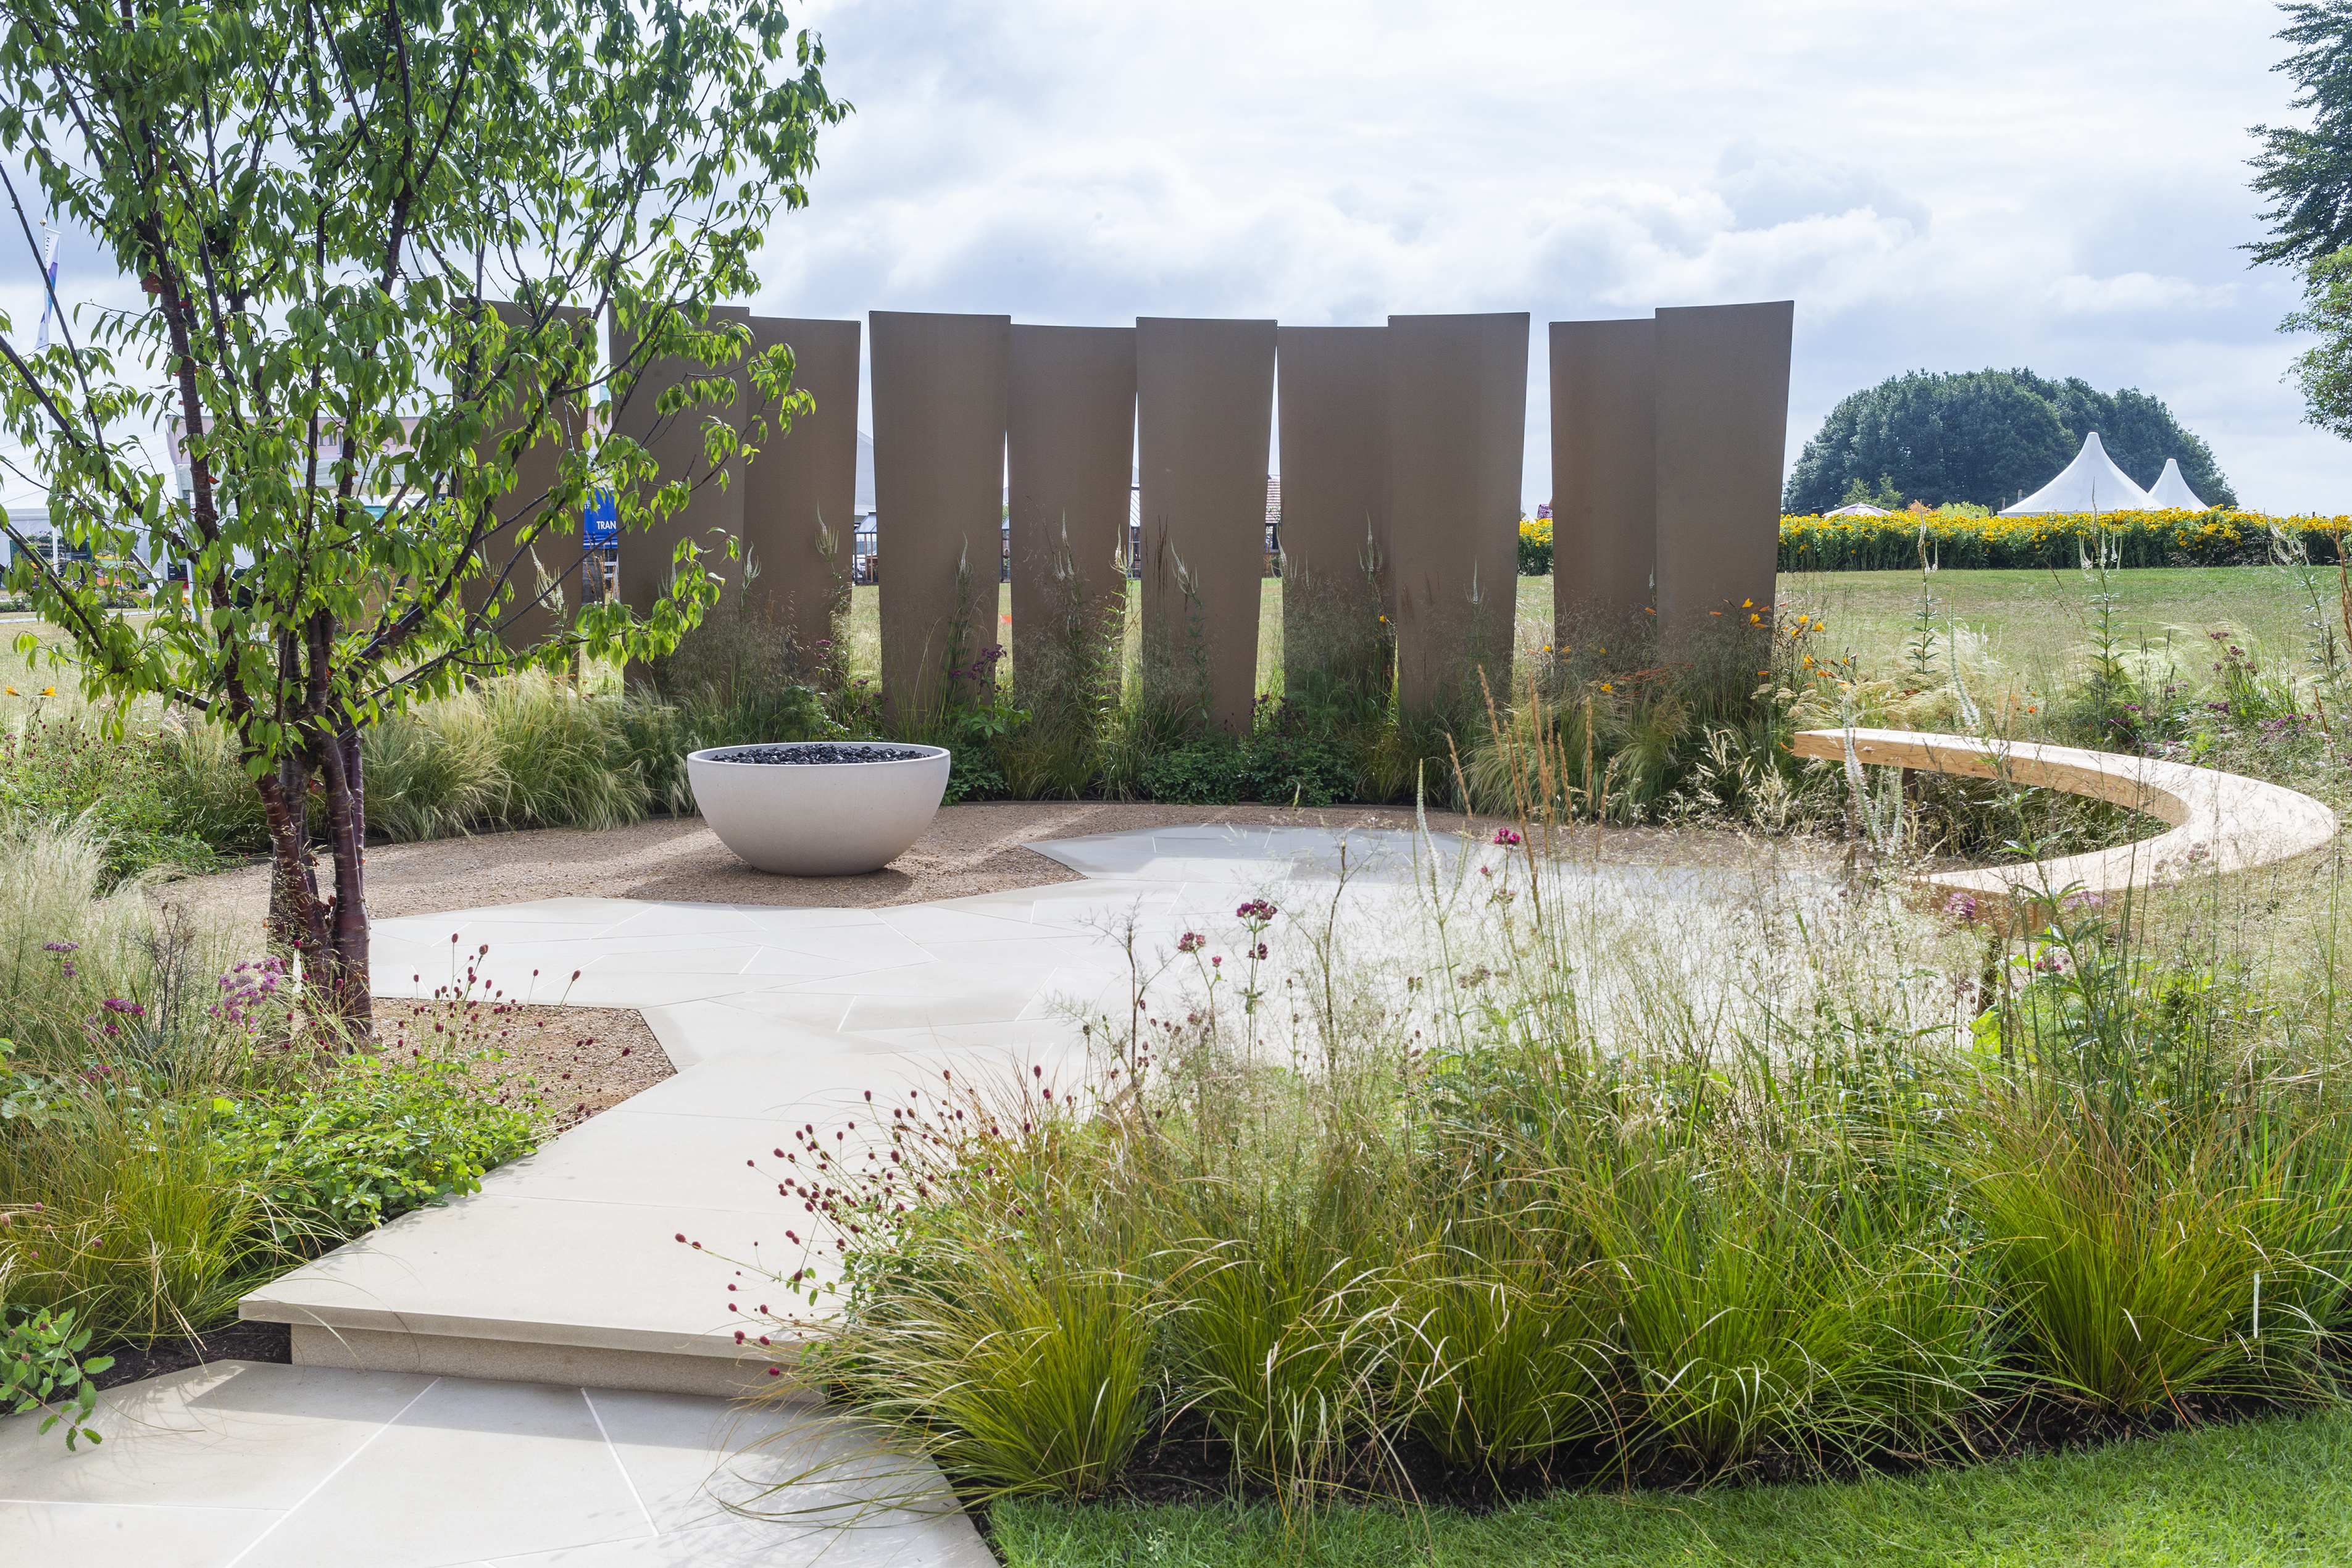 Barnshaws pots RHS Tatton 'Best Show Garden' with JW Lees 190th Anniversary plot